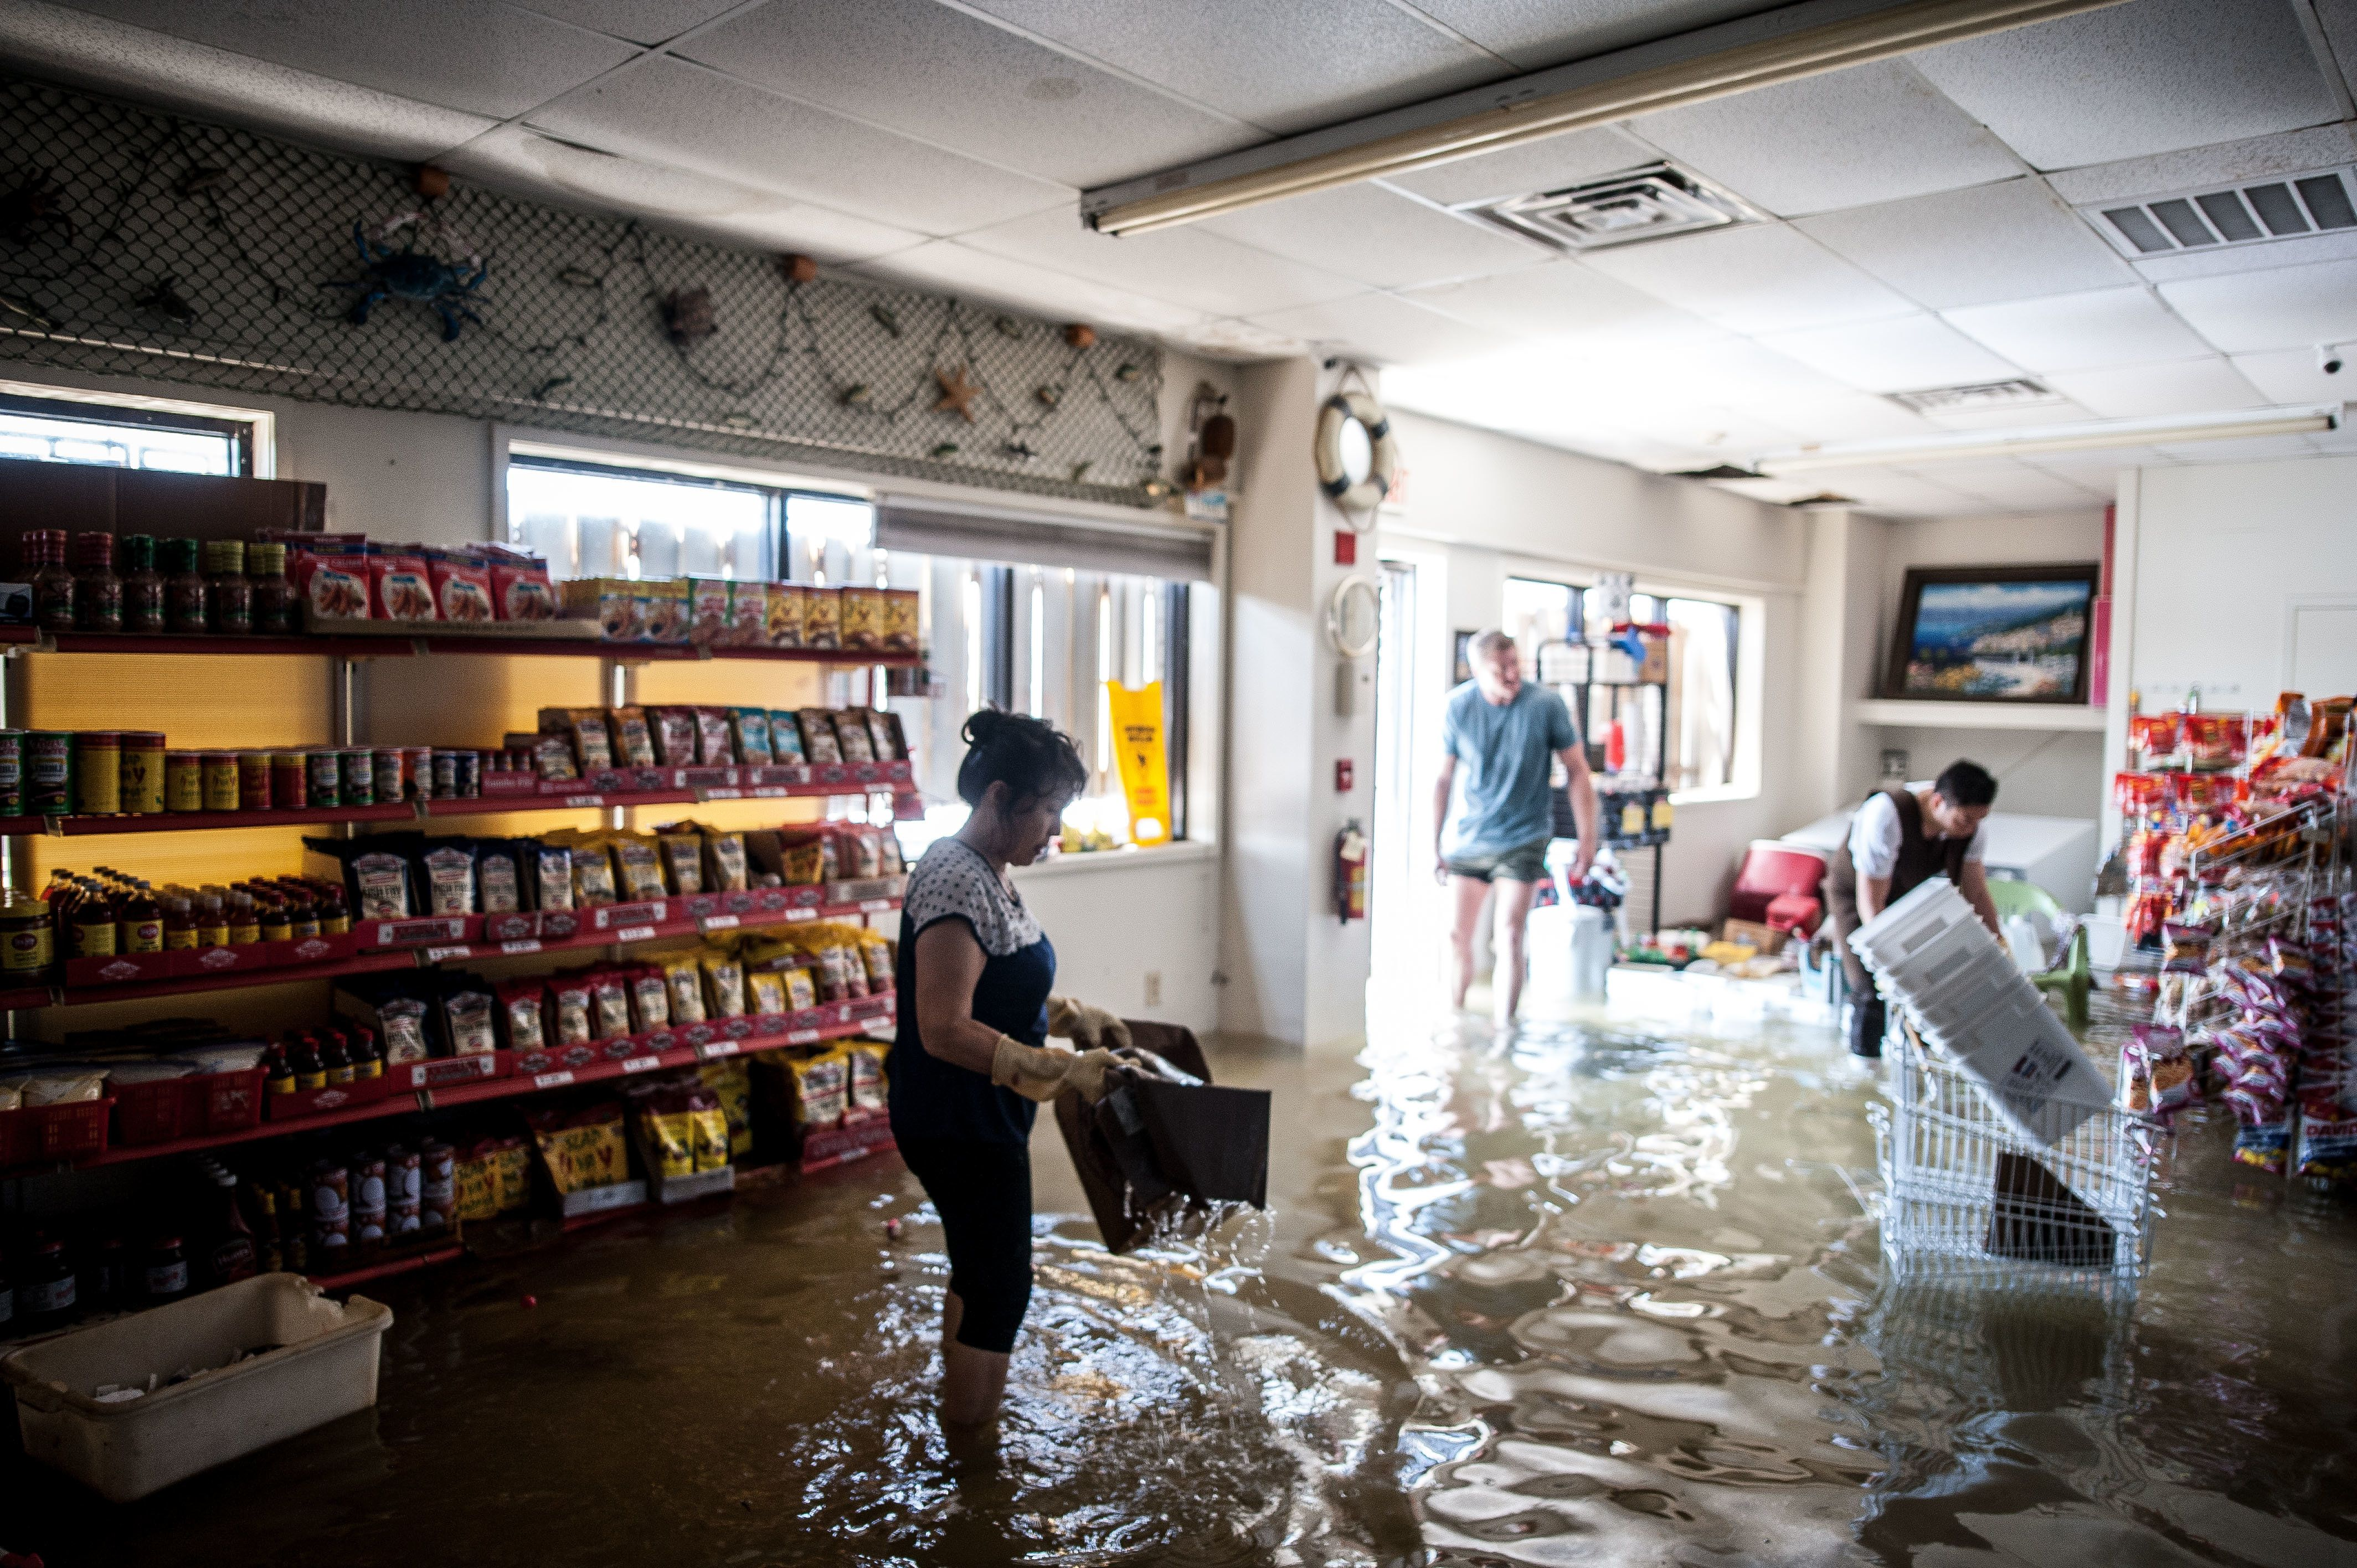 This Woman's Flooded Store Looks Brand New After She Refused To Give Up Hope